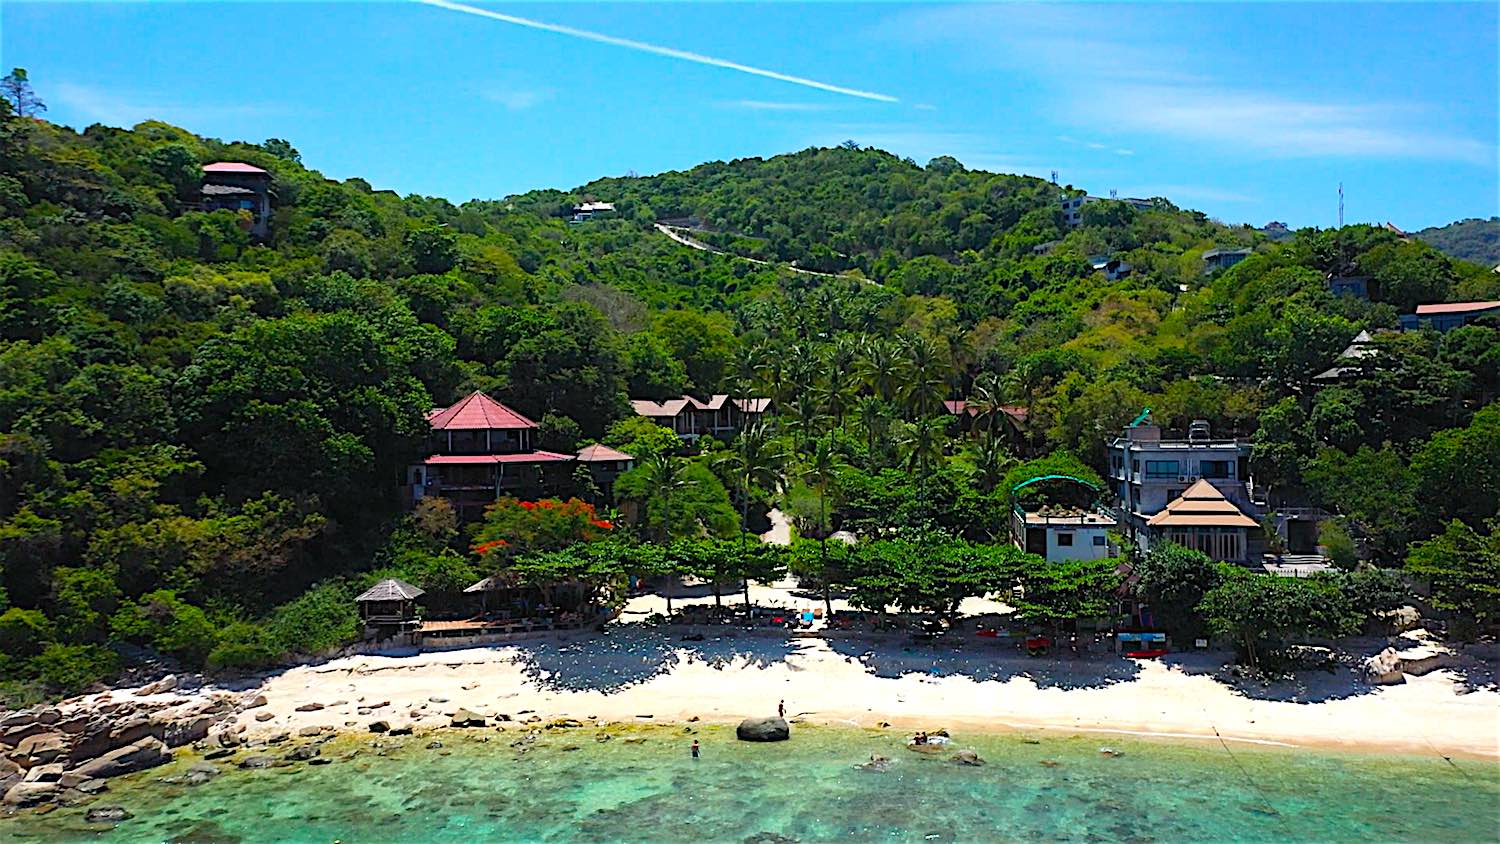 www.thefunkyturtle.com coral view resort saideng koh tao